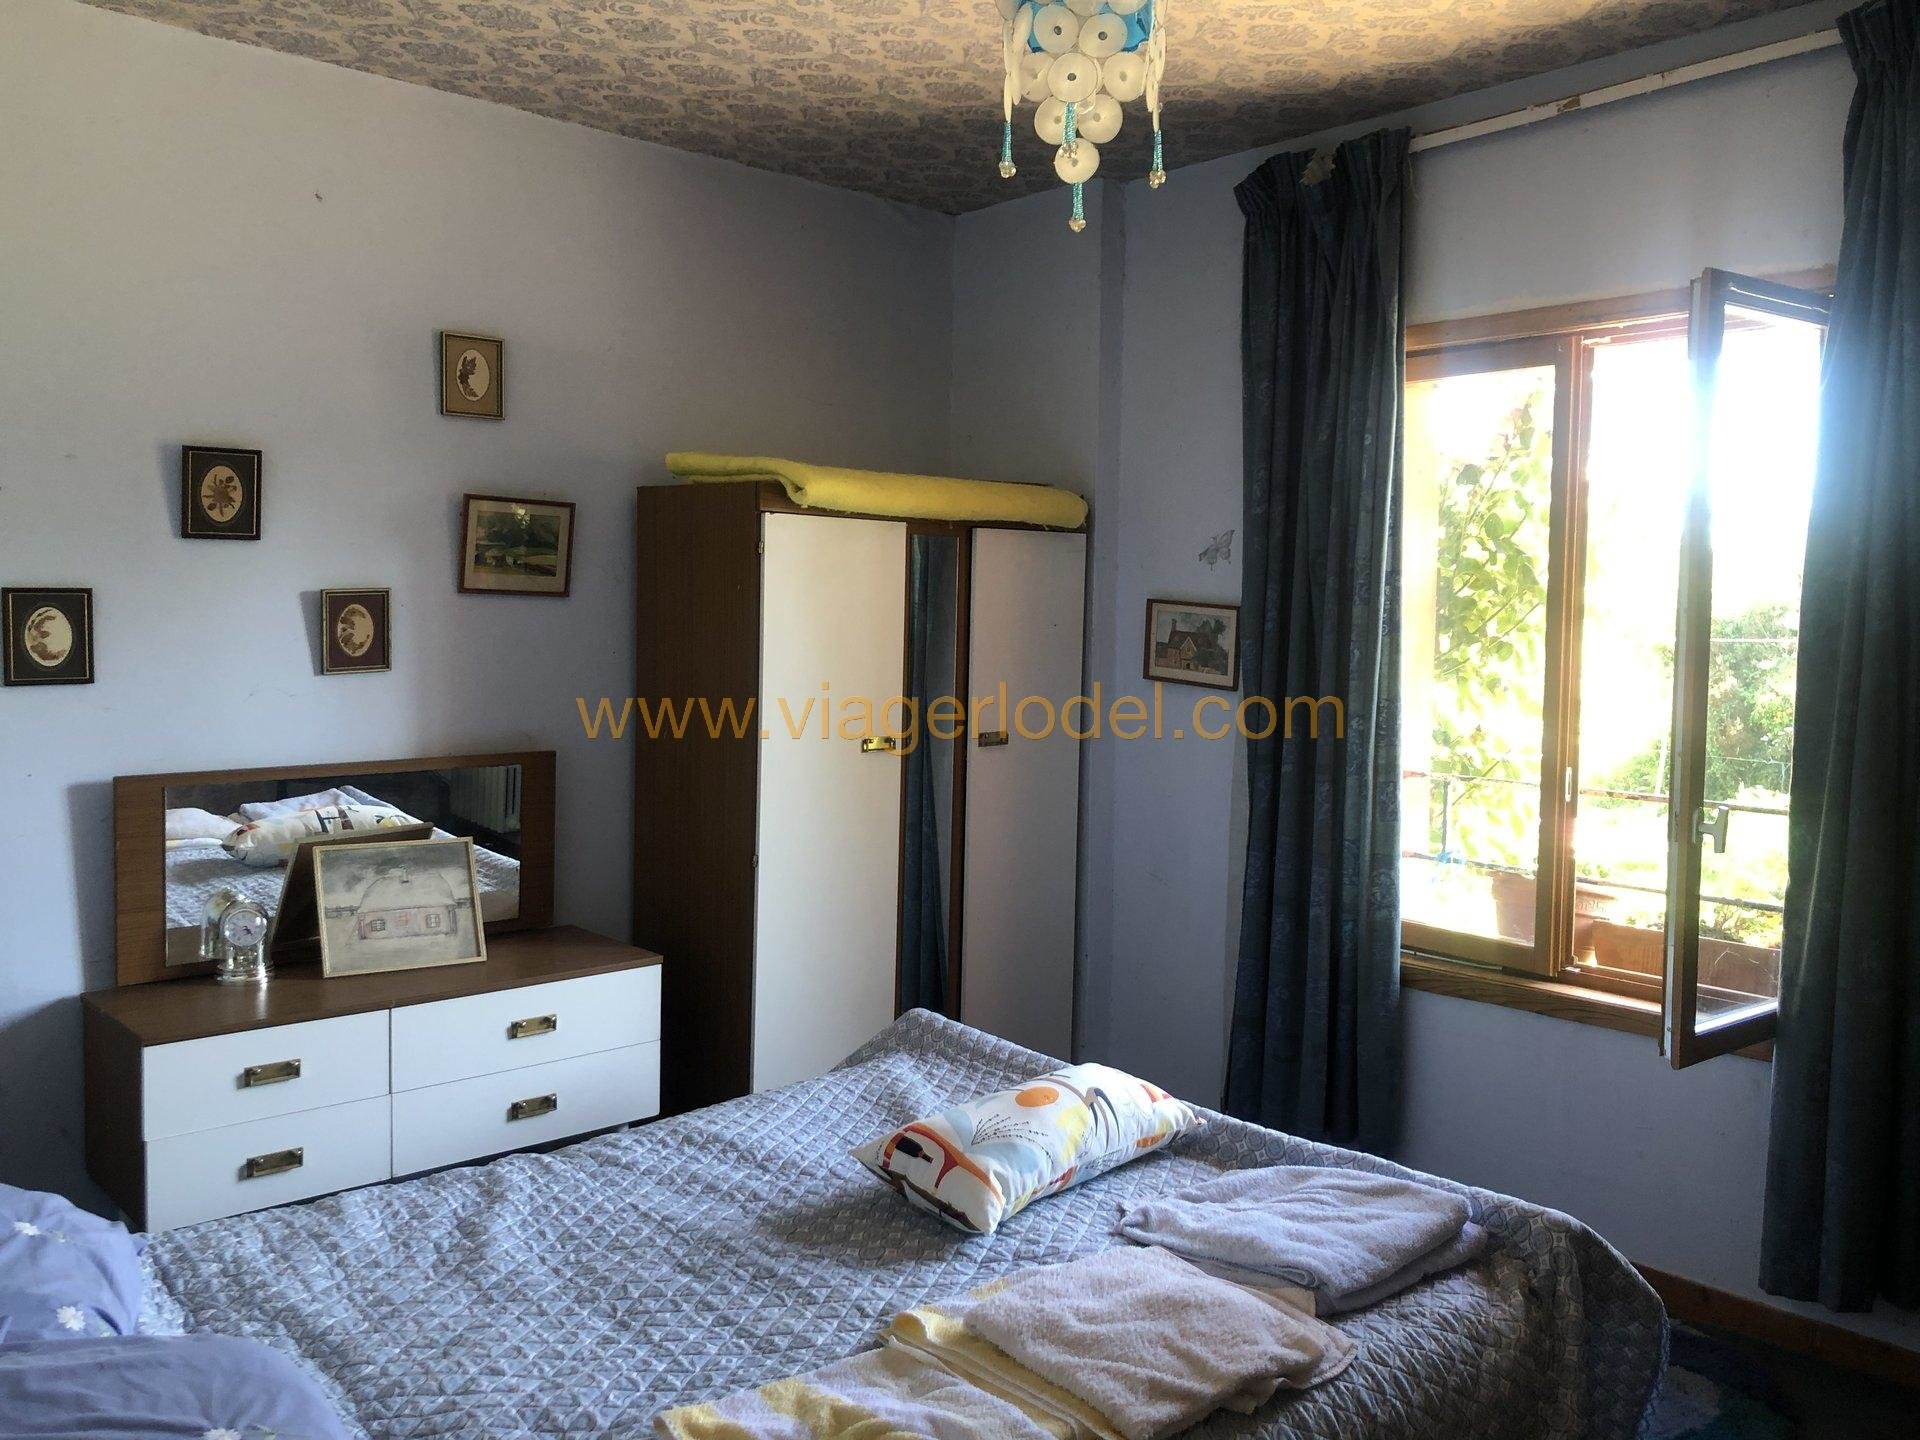 VIAGER OCCUPE - MONTREUIL SUR LOZON (50)